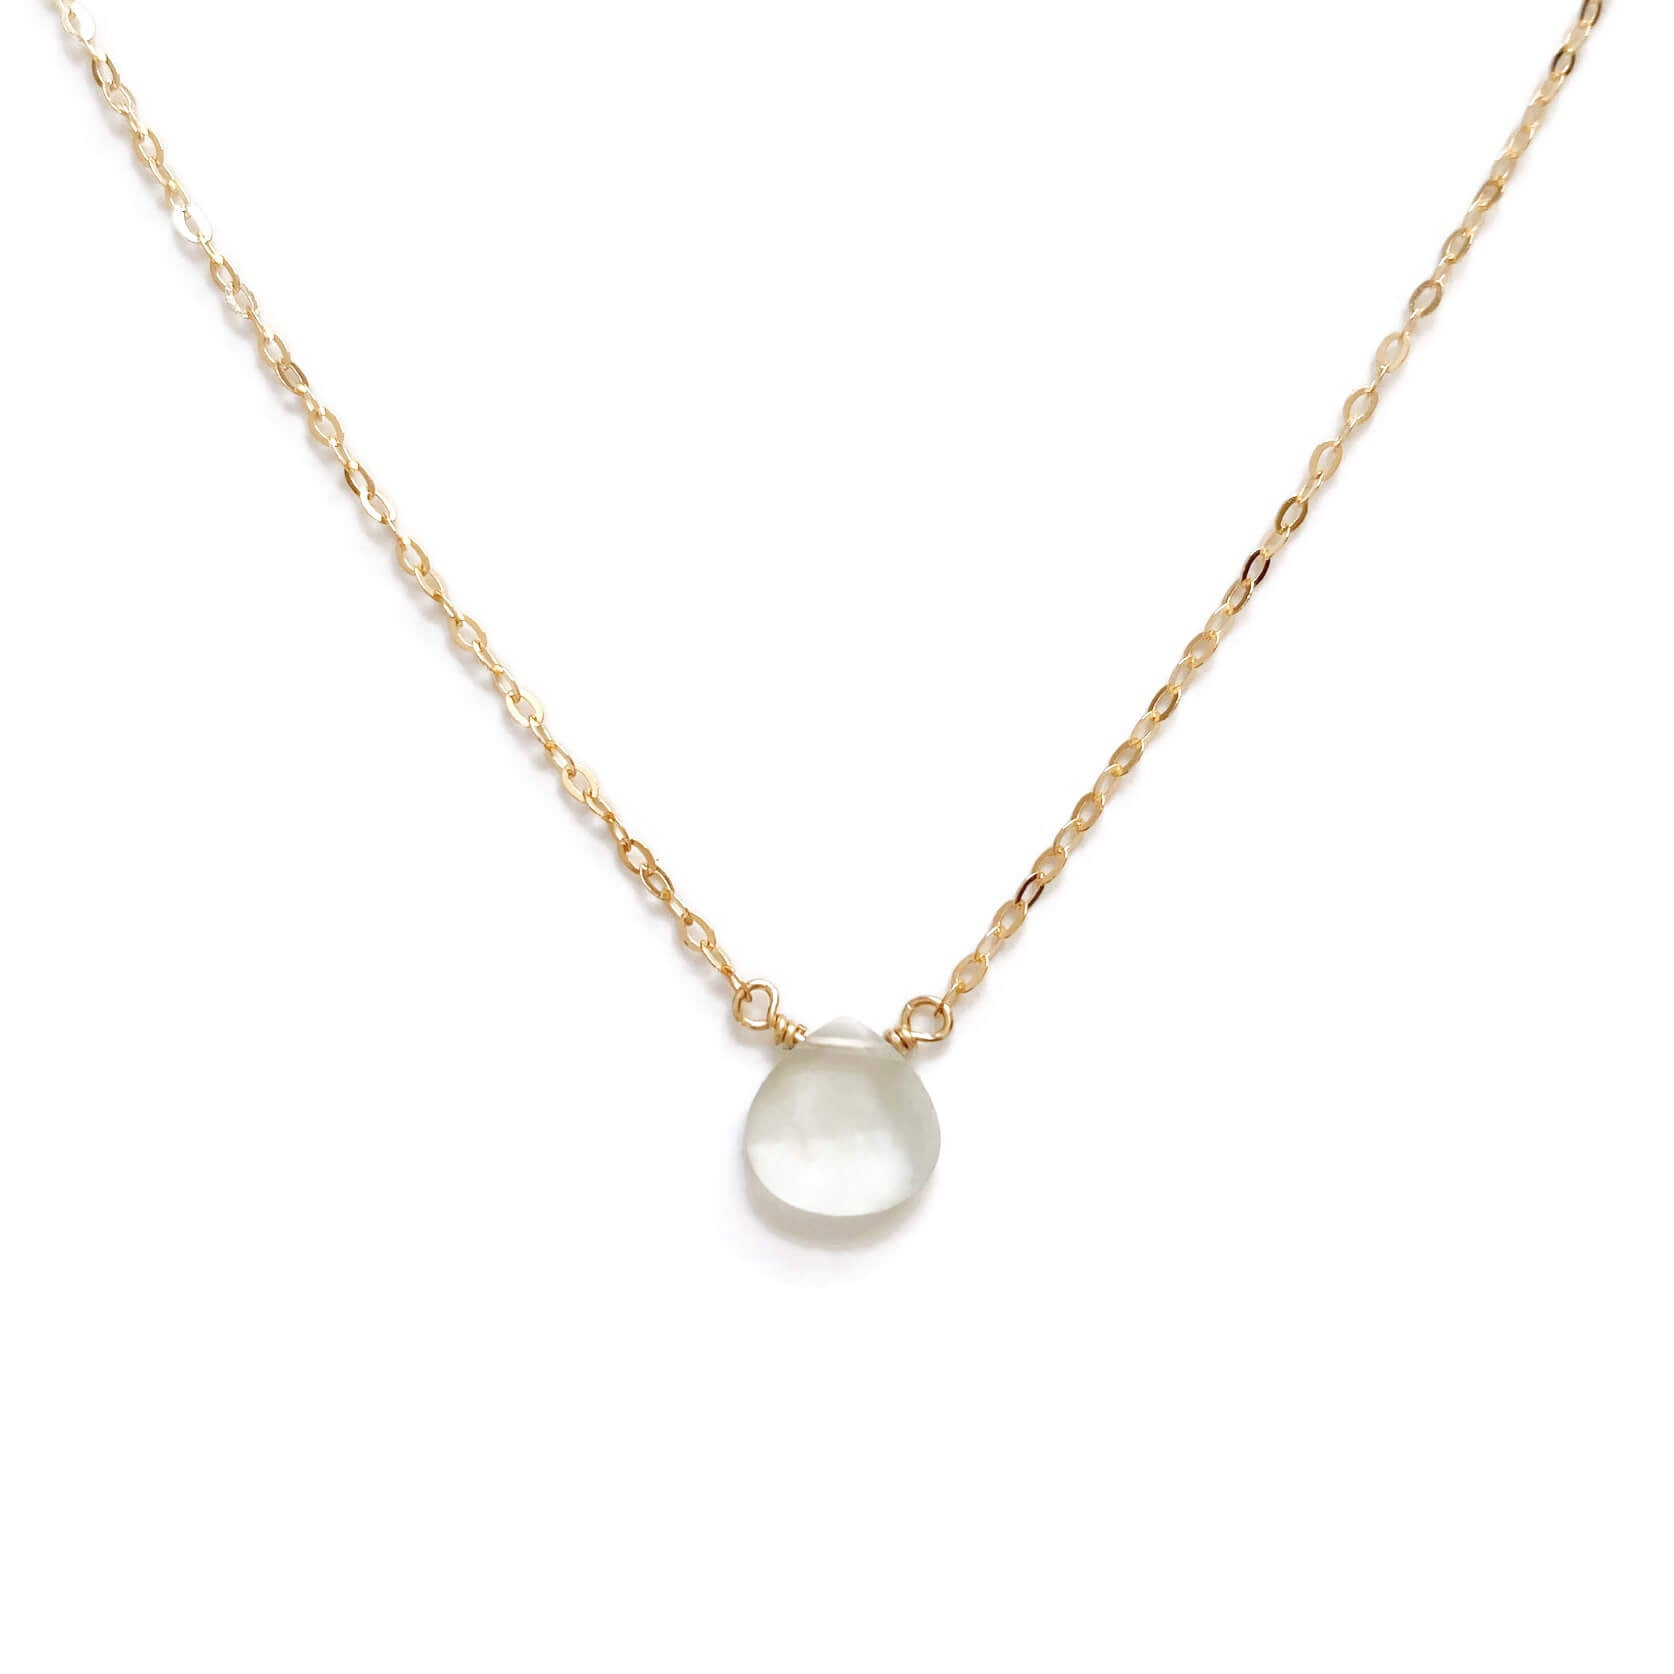 The elegant yet simple prehnite necklace is made in our San Francisco studio with your choice of 14k gold, gold fill or sterling silver chain.